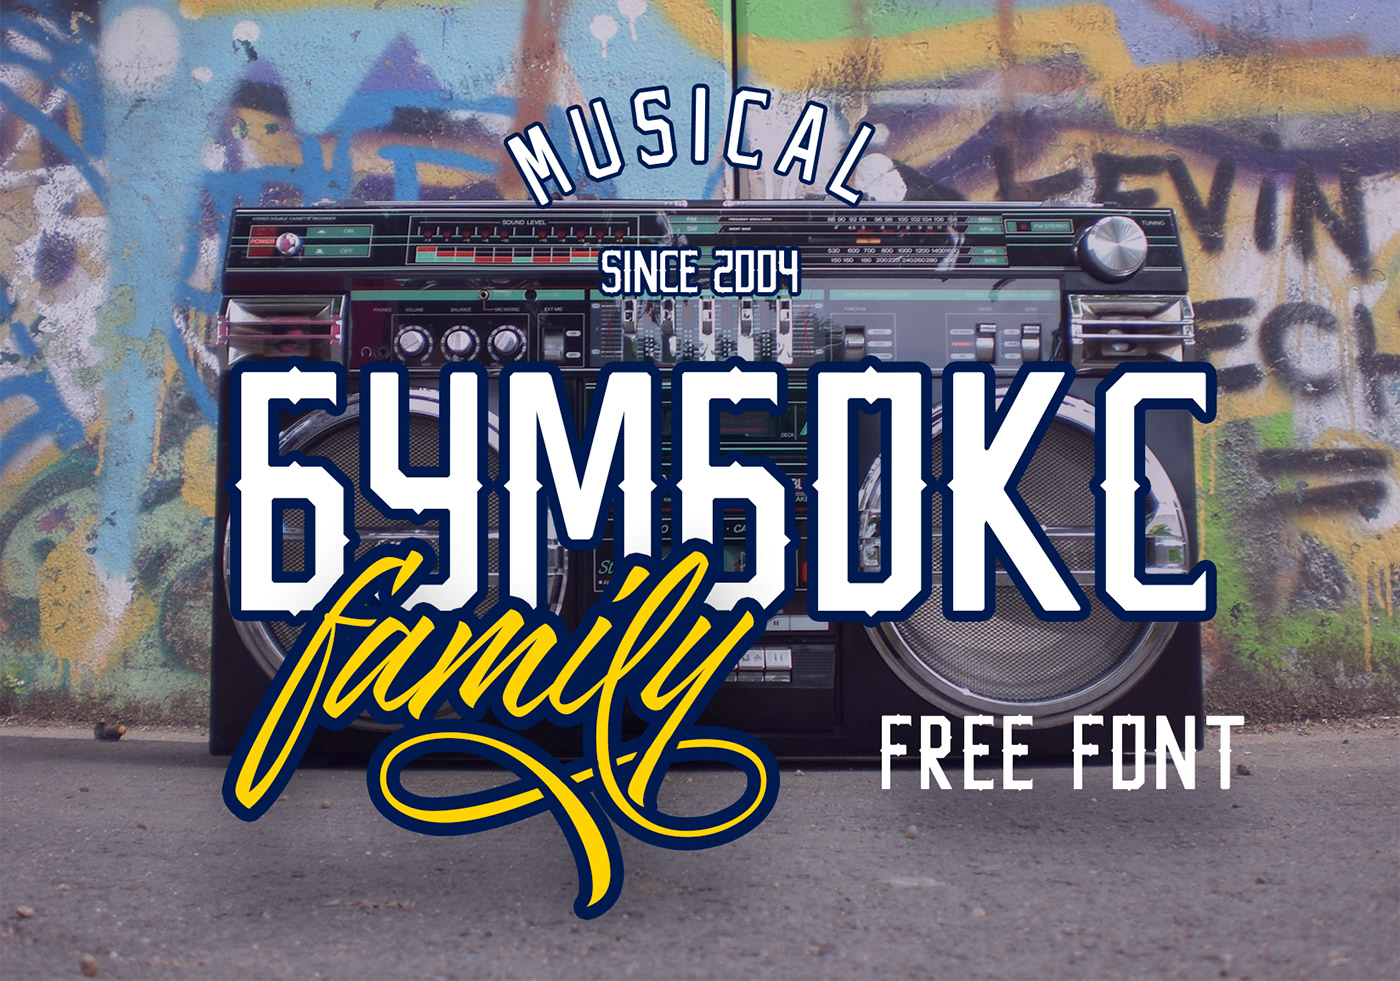 Cyrillic,digital,font,free,Free font,Latin,letters,Typeface,typography